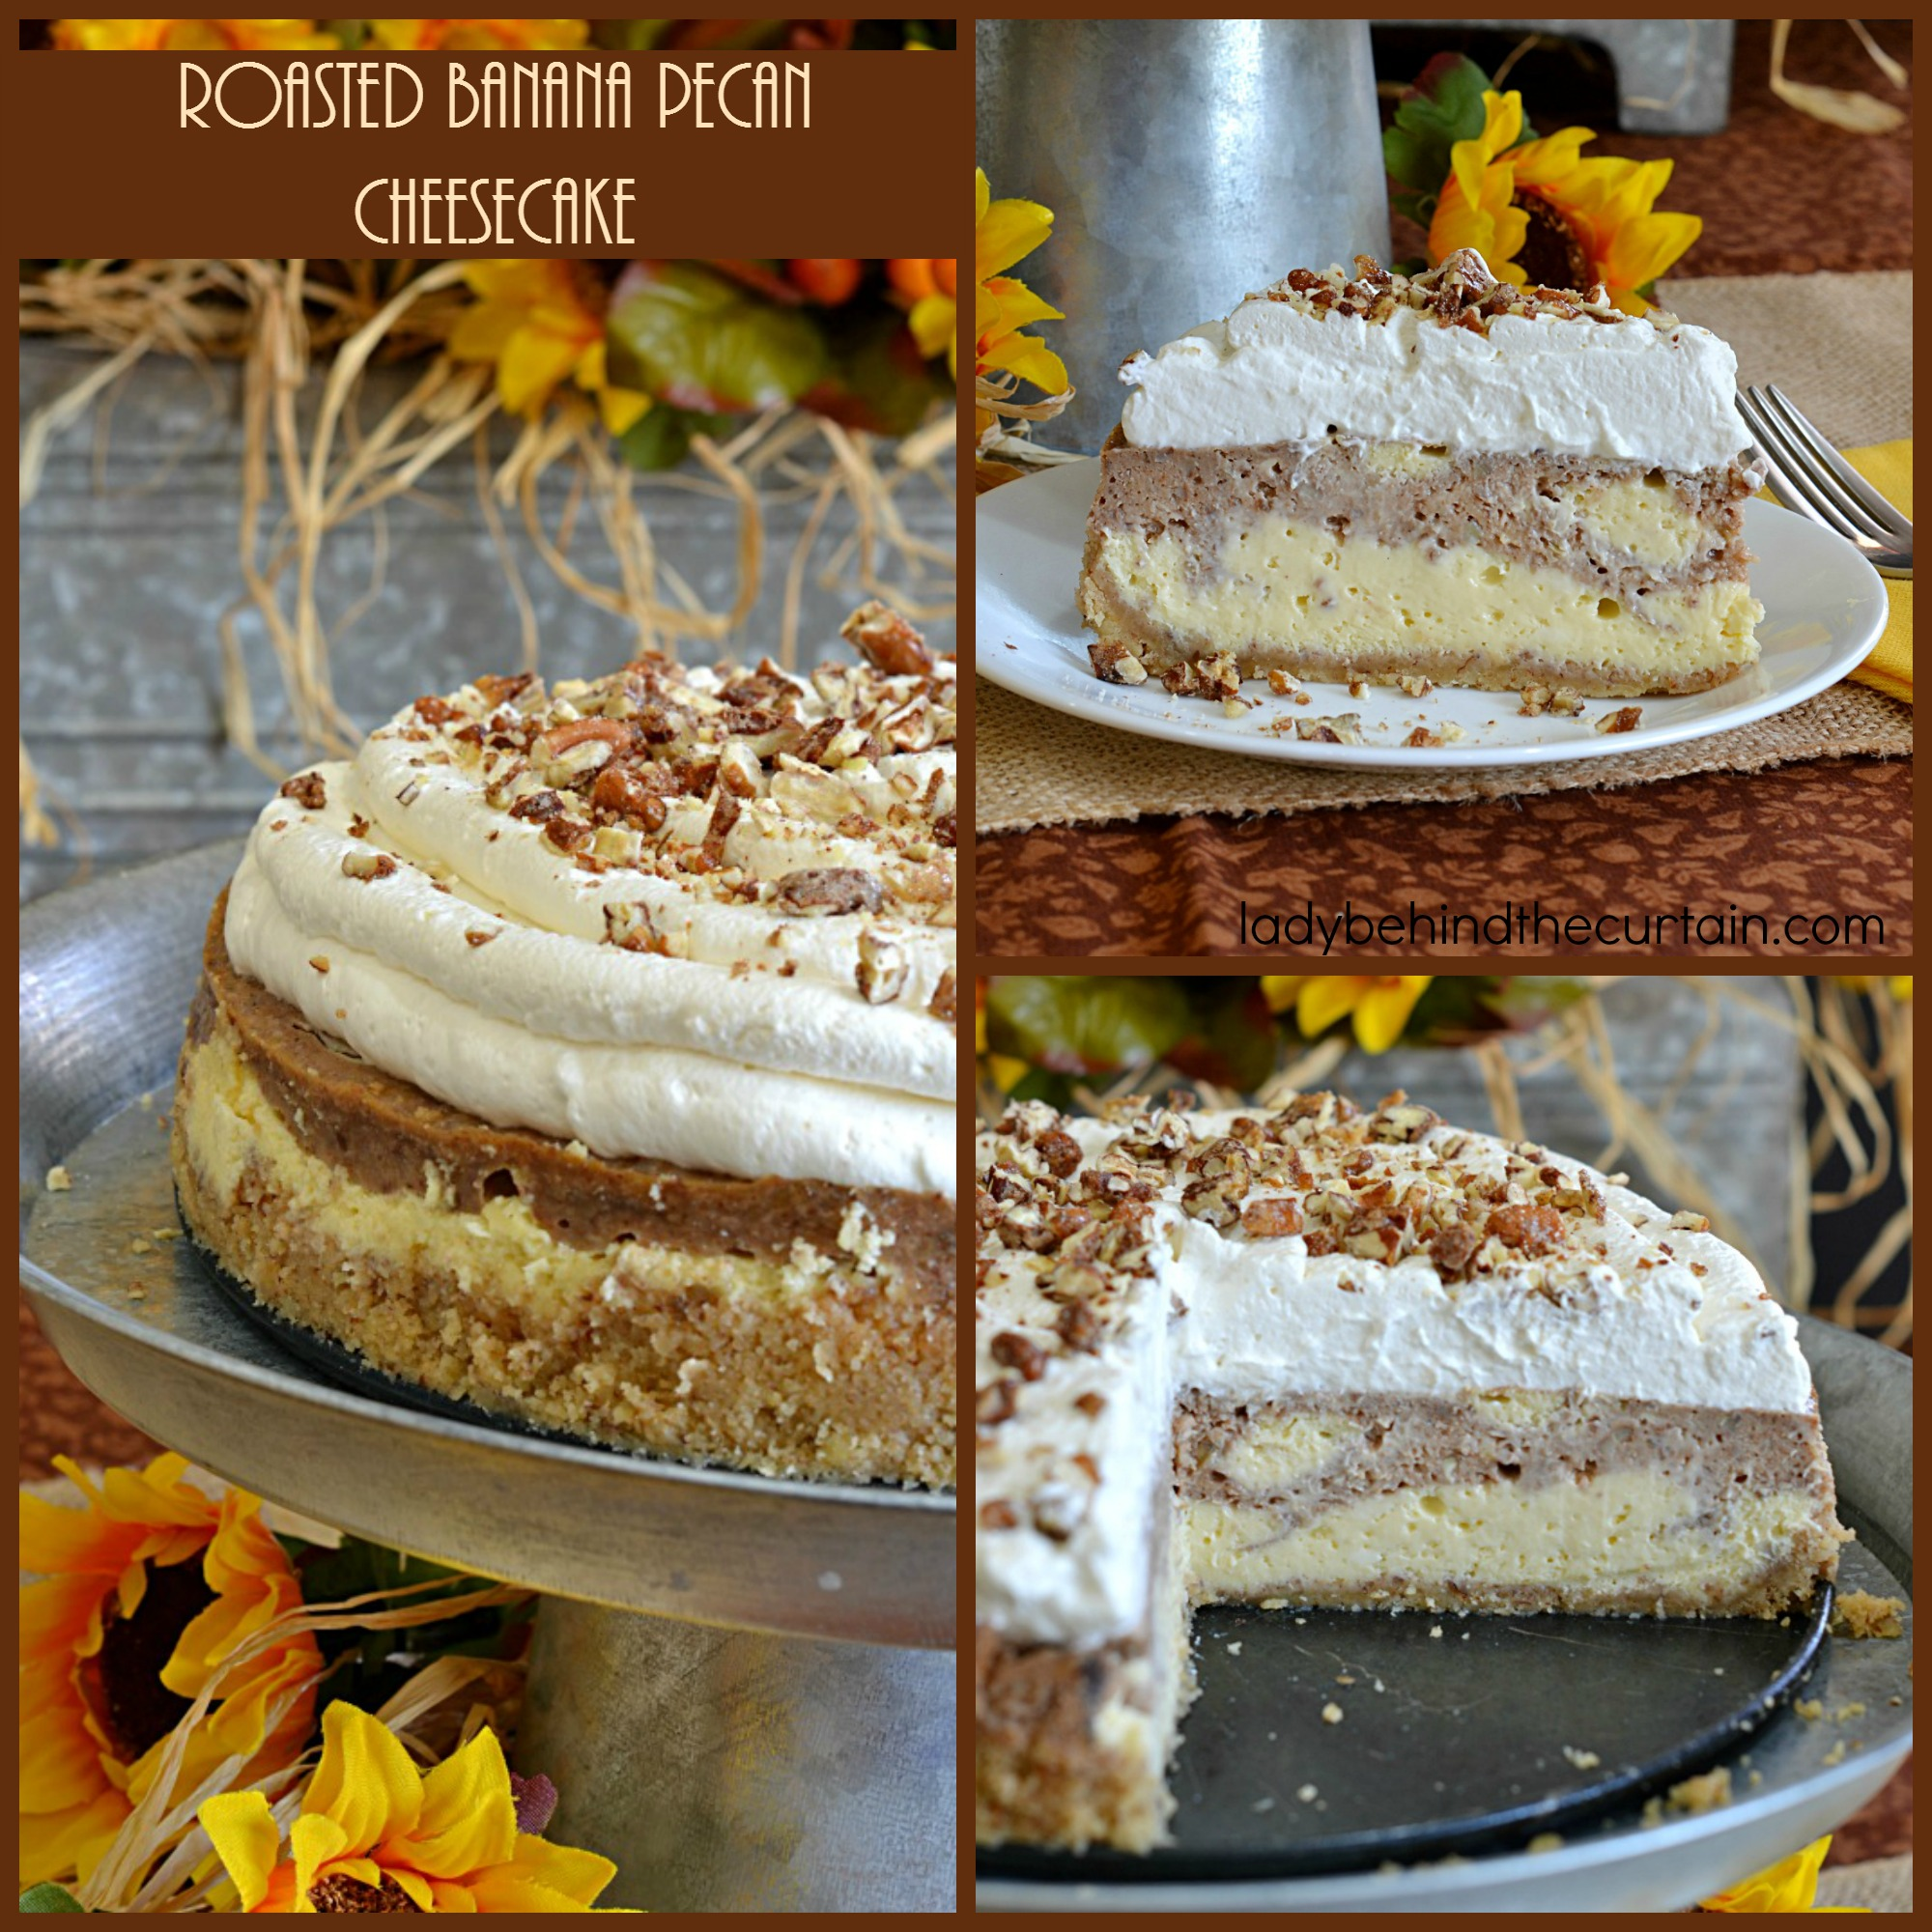 Roasted Banana Pecan Cheesecake | The base of this incredible cheesecake is marbled with mashed roasted bananas and also topped with light and fluffy homemade pecan whipped cream. I'd call that a holiday on a plate!